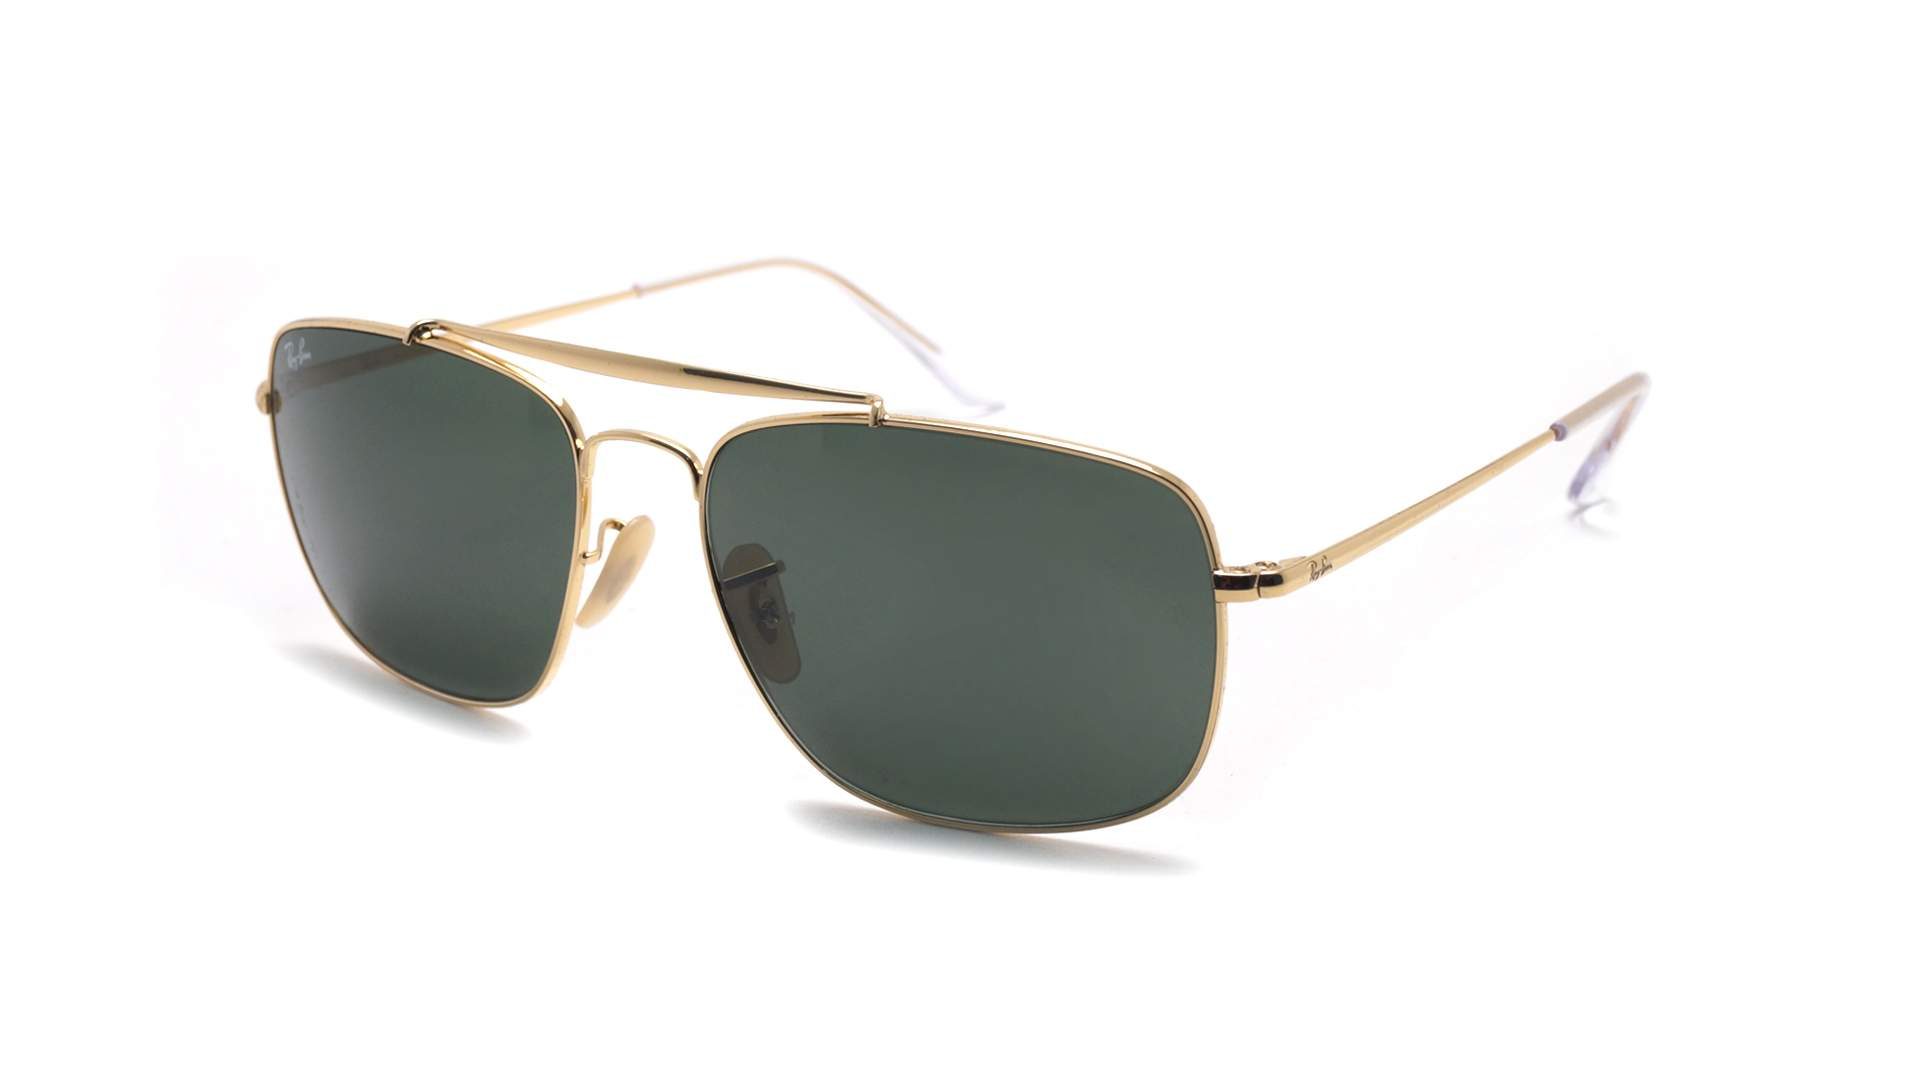 f17fe774e5 Sunglasses Ray-Ban The colonel Gold G-15 RB3560 001 61-17 Large